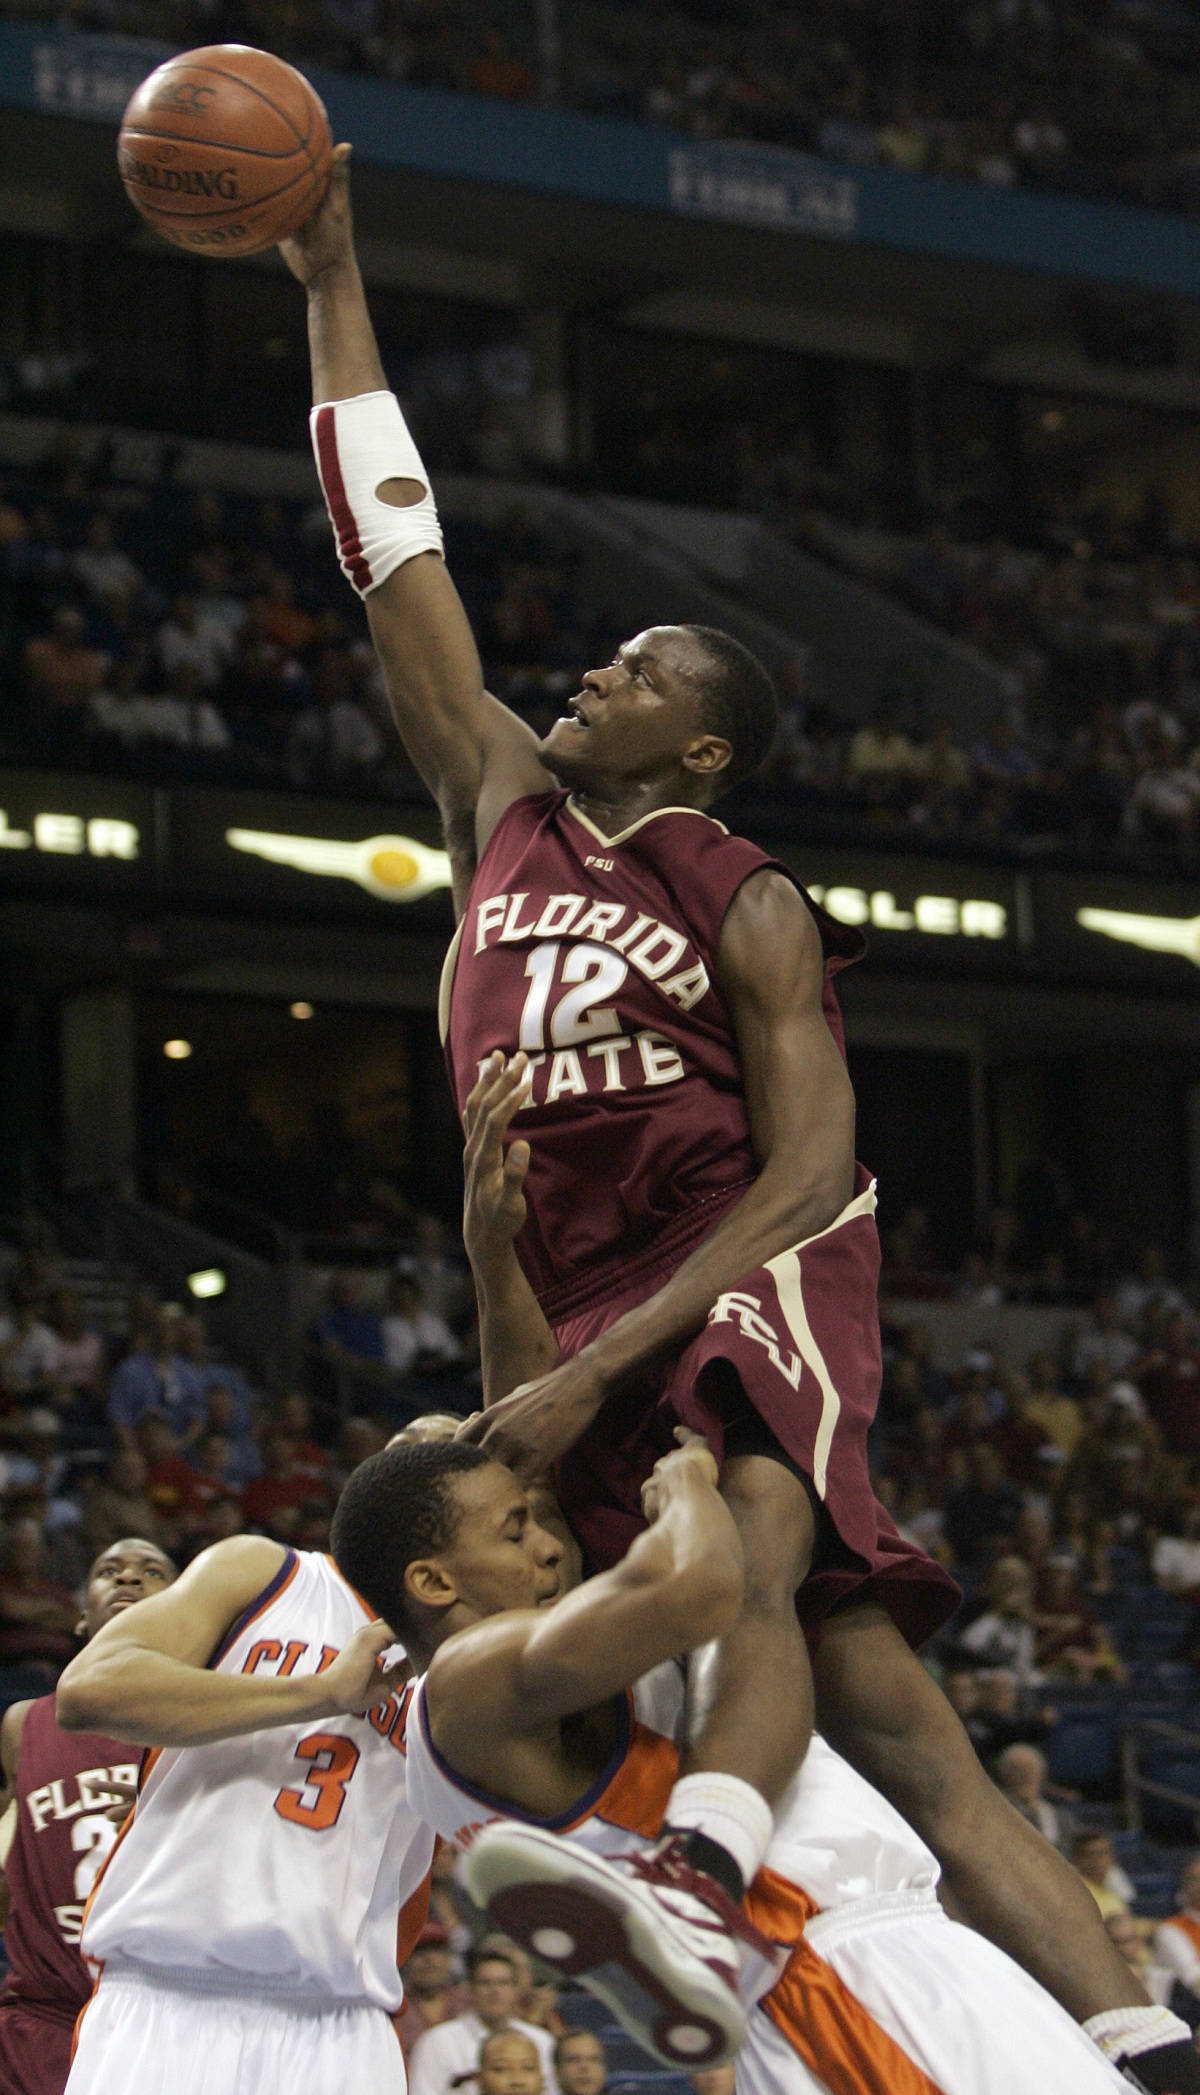 Florida State's Al Thornton (12) drives over Clemson's Cliff Hammonds (25) during the first half of a first round game of the Men's Atlantic Coast Conference basketball tournament in Tampa, Fla., Thursday, March 8, 2007. (AP Photo/David J. Phillip)